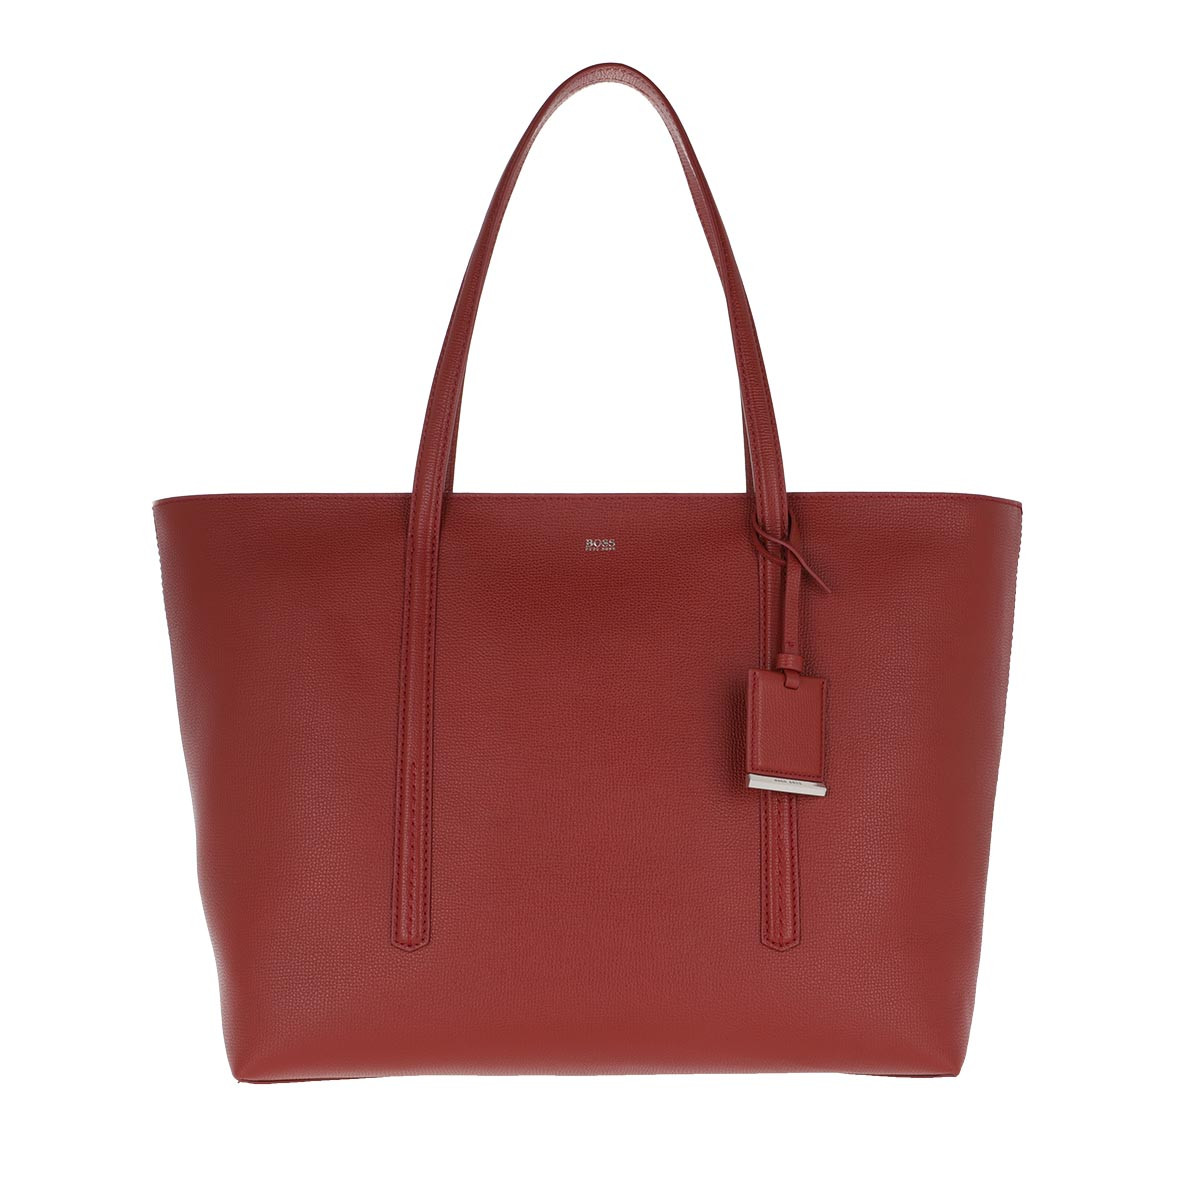 Boss Shopper - Taylor Shopping Bag Dark Red - in rot - für Damen